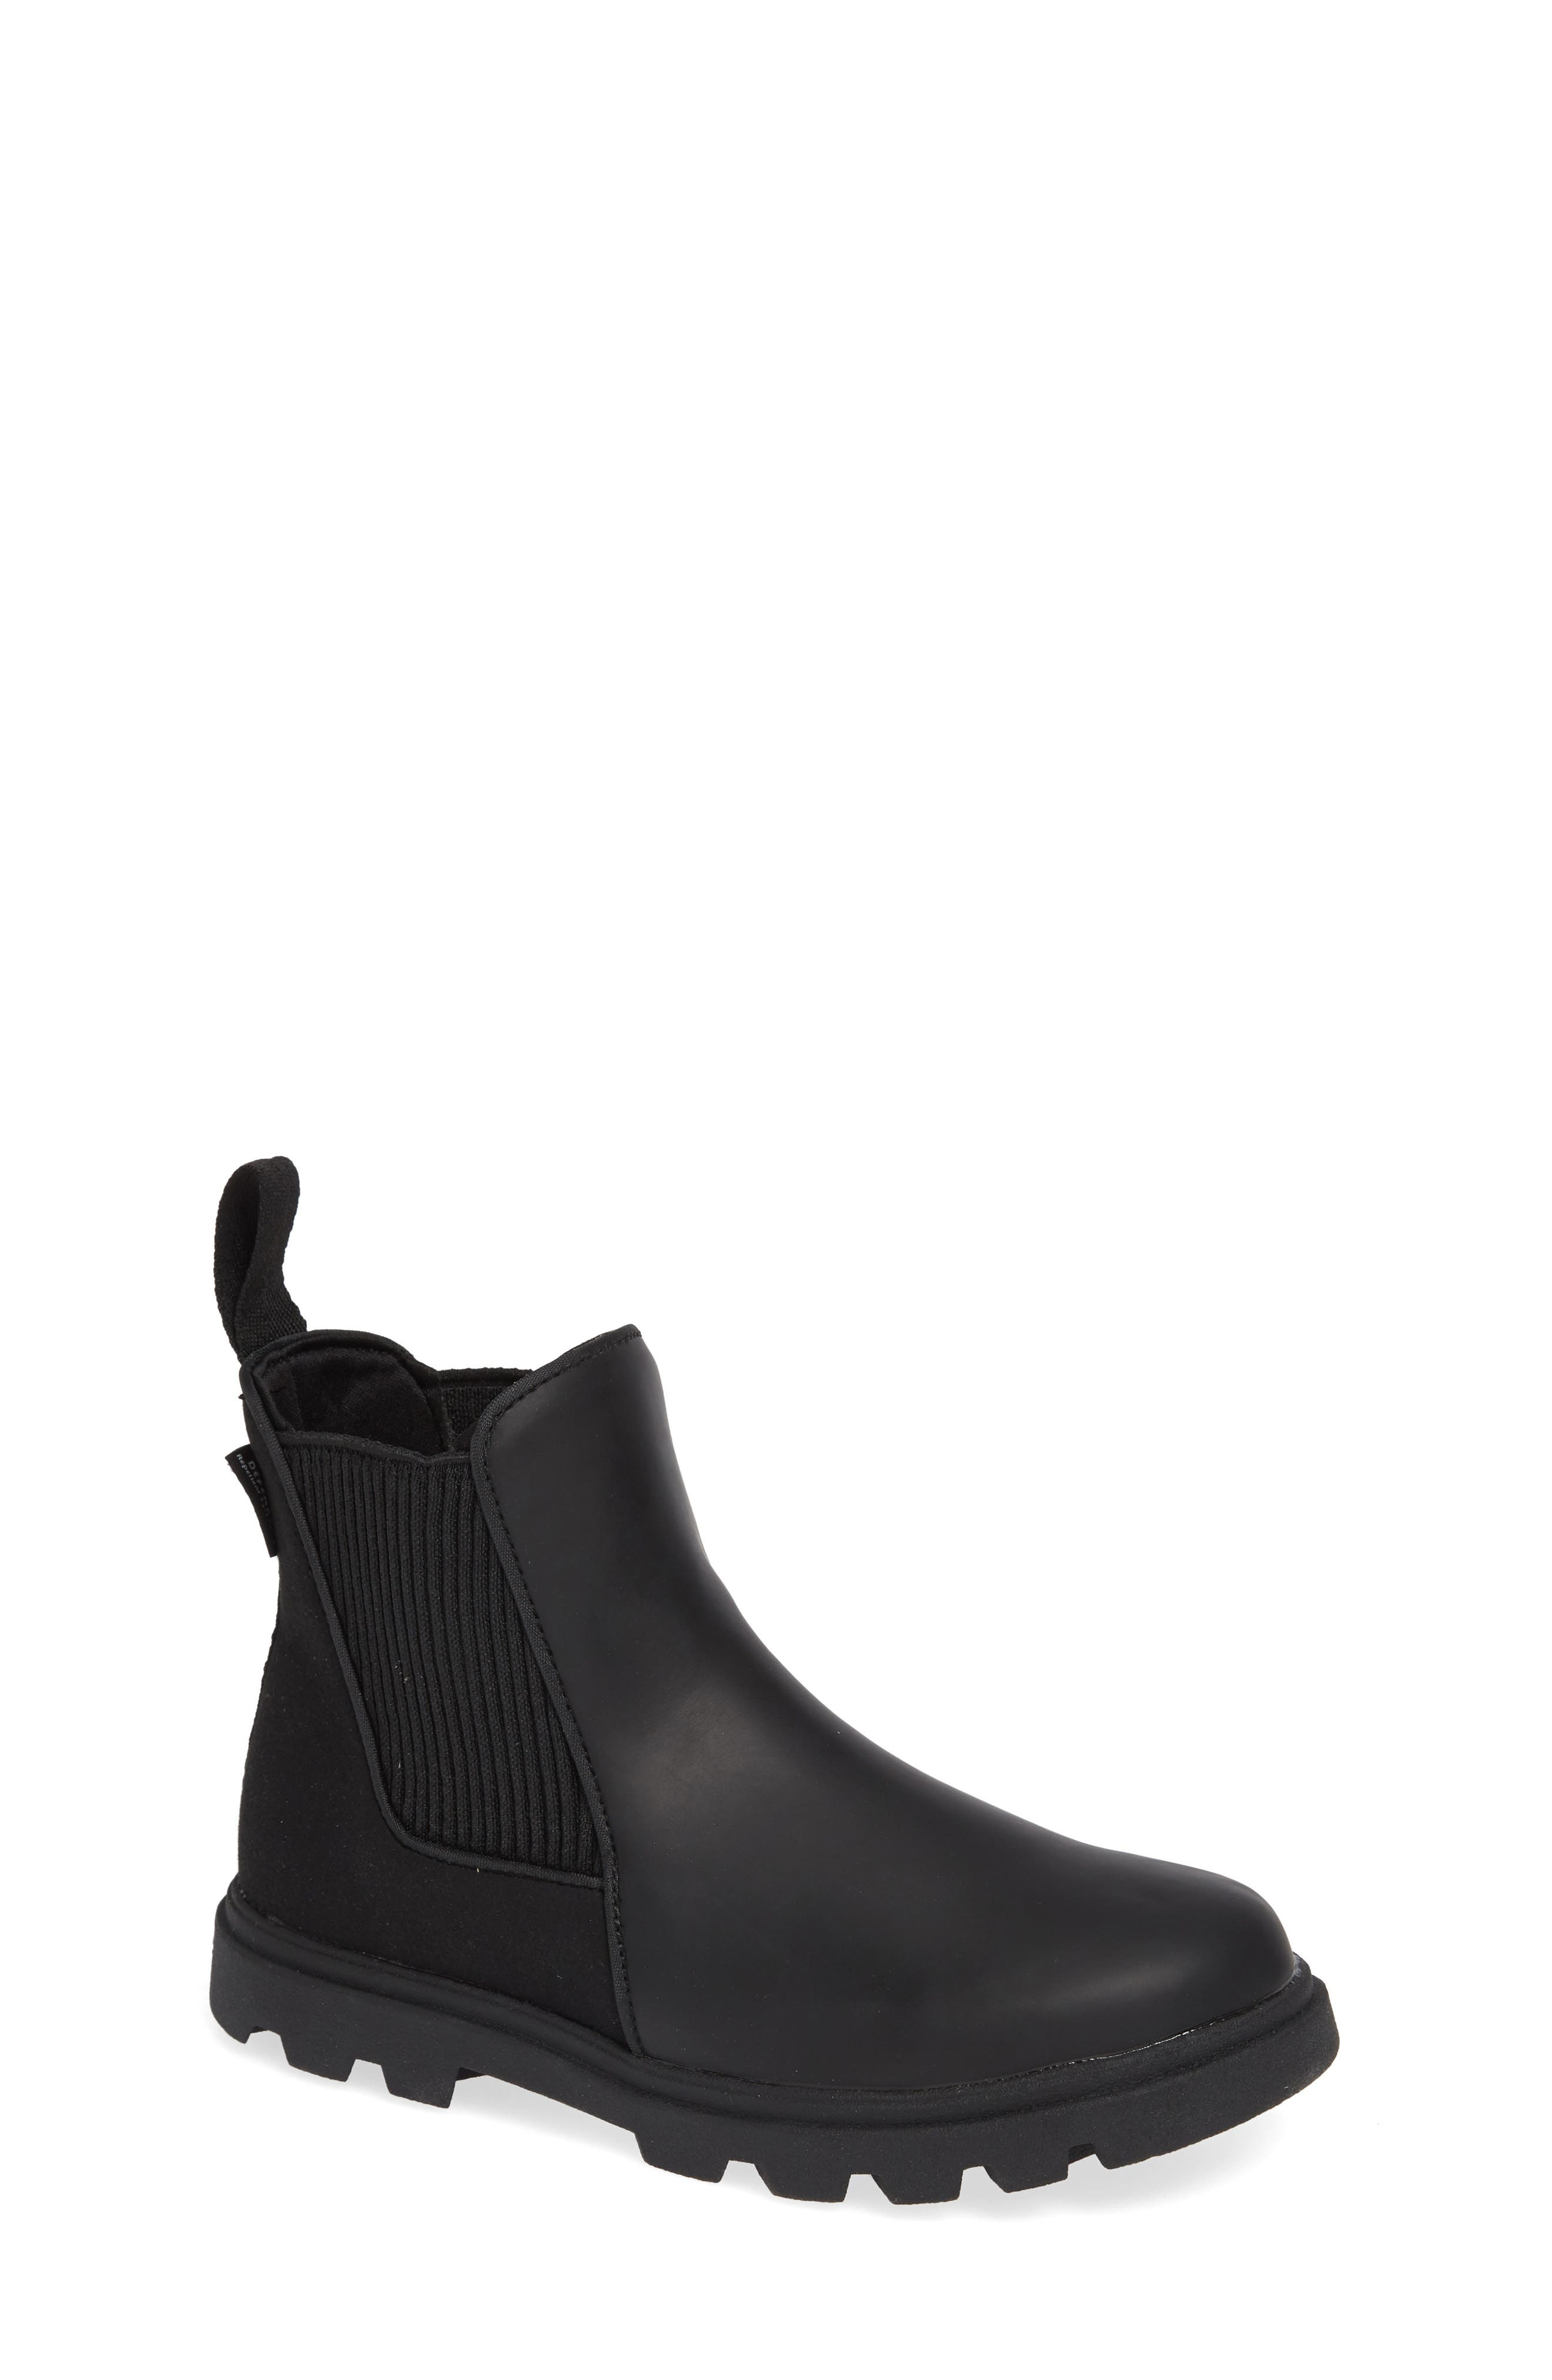 Kensington Treklite Vegan Leather Chelsea Bootie,                             Main thumbnail 1, color,                             JIFFY BLACK